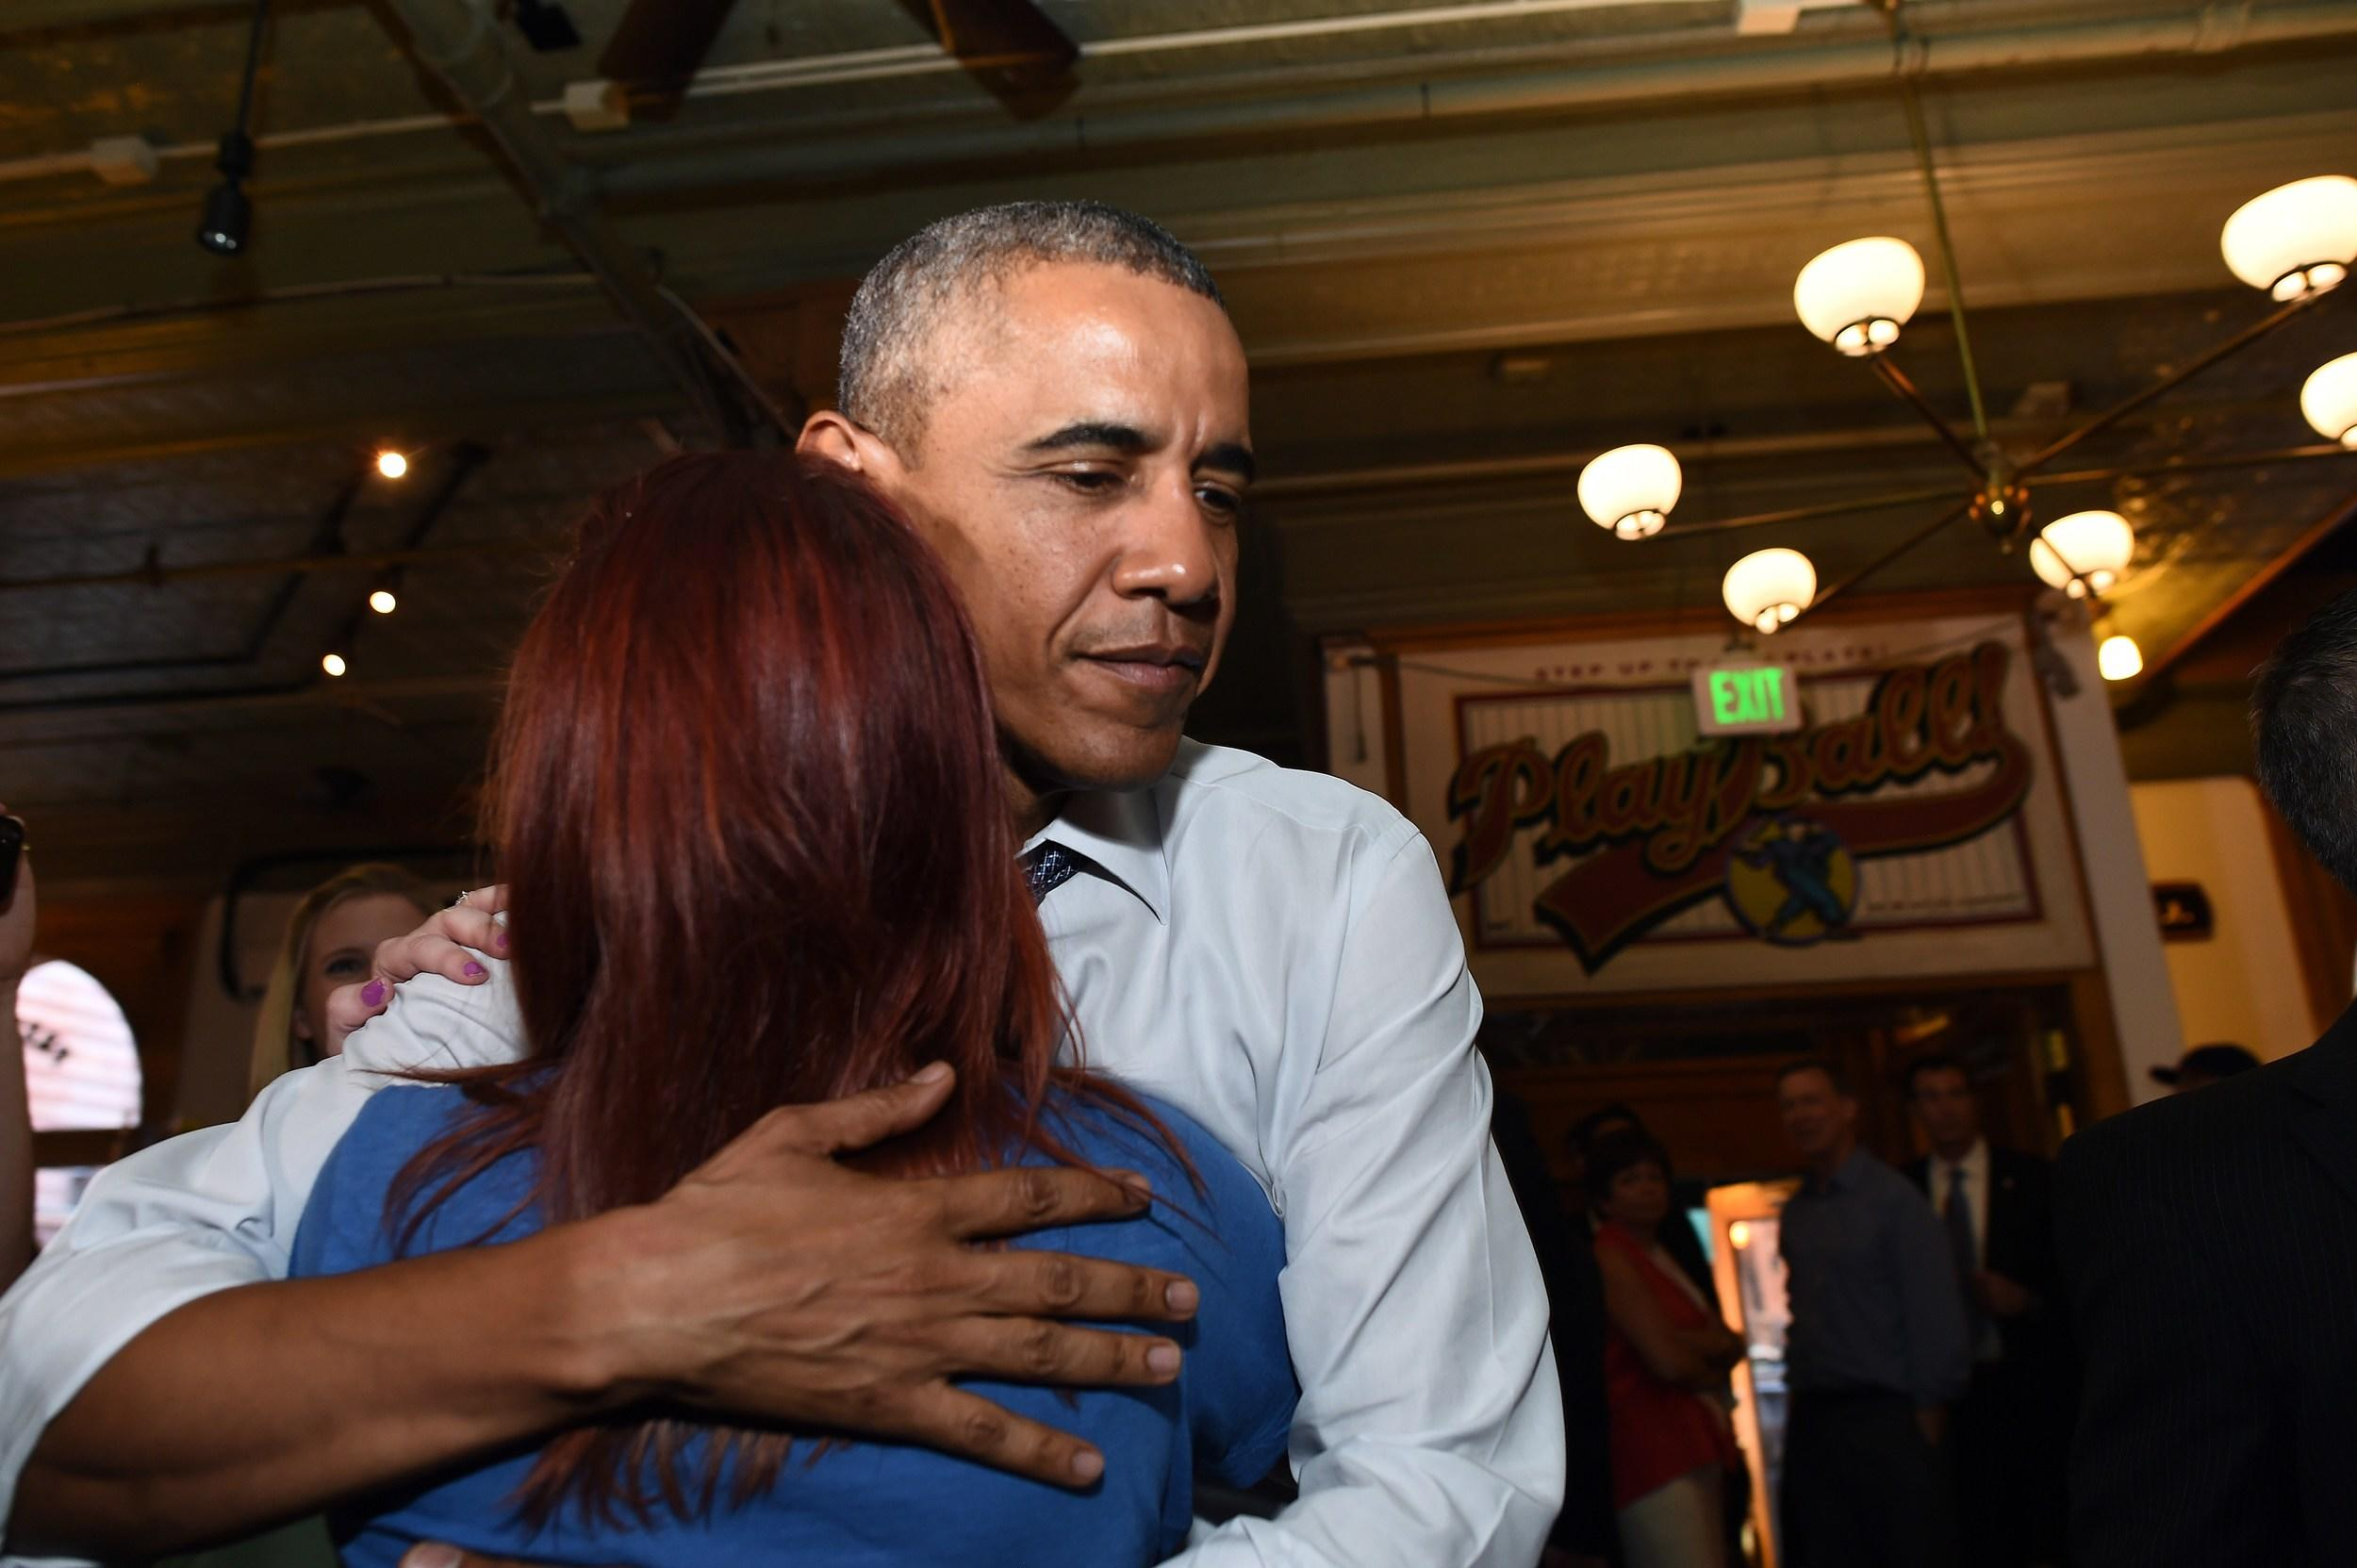 US President Barack Obama hugs Kalynne May Arrick from Tyler, Texas, after learning that her older brother Marine Sgt. Kenneth May had been killed in Afghanistan in 2010, at a pub in Denver, Colorado, on July 8, 2014. AFP PHOTO/Jewel Samad        (Photo credit should read JEWEL SAMAD/AFP/Getty Images)